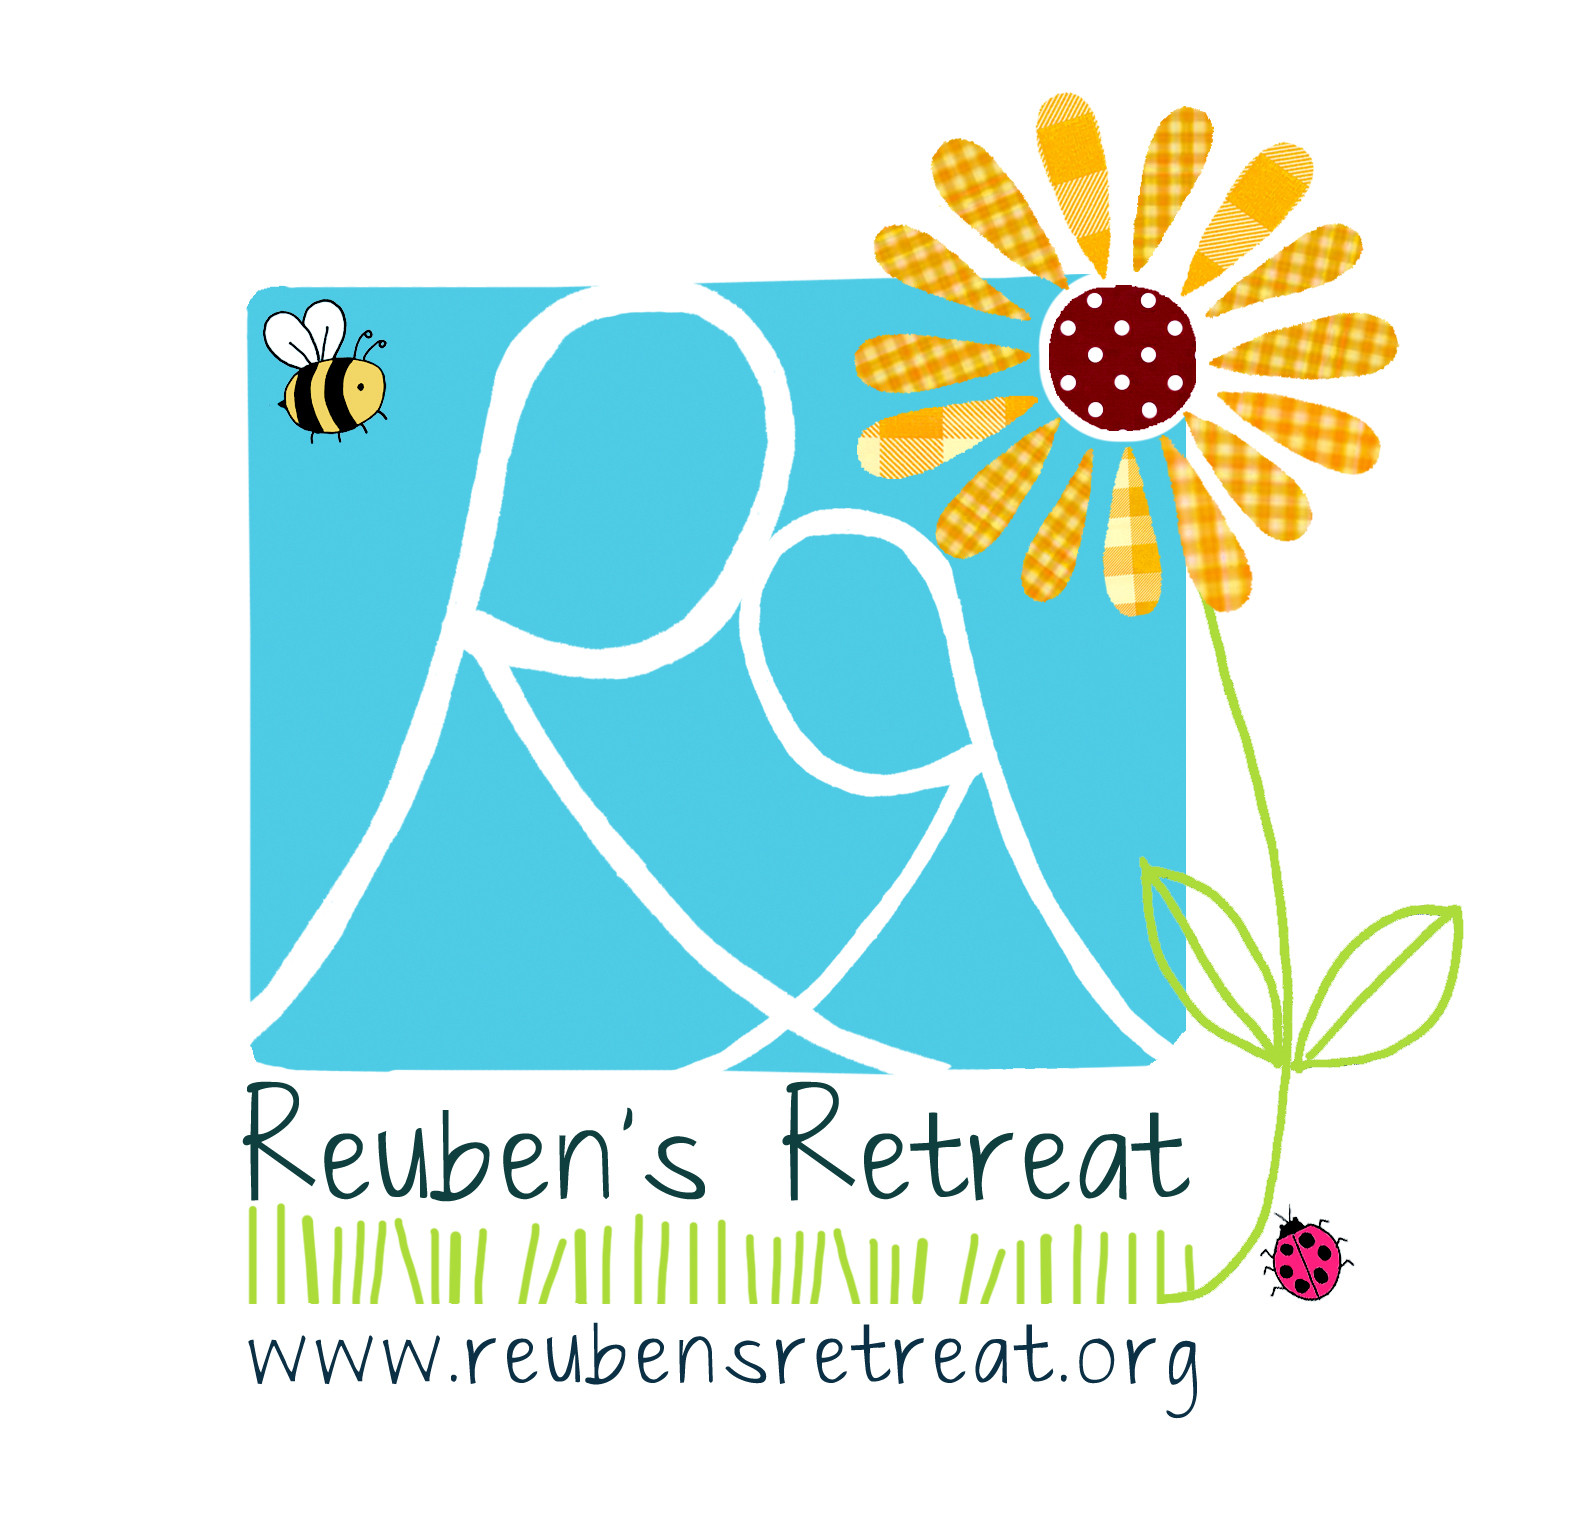 C&M supports Reuben's Retreat